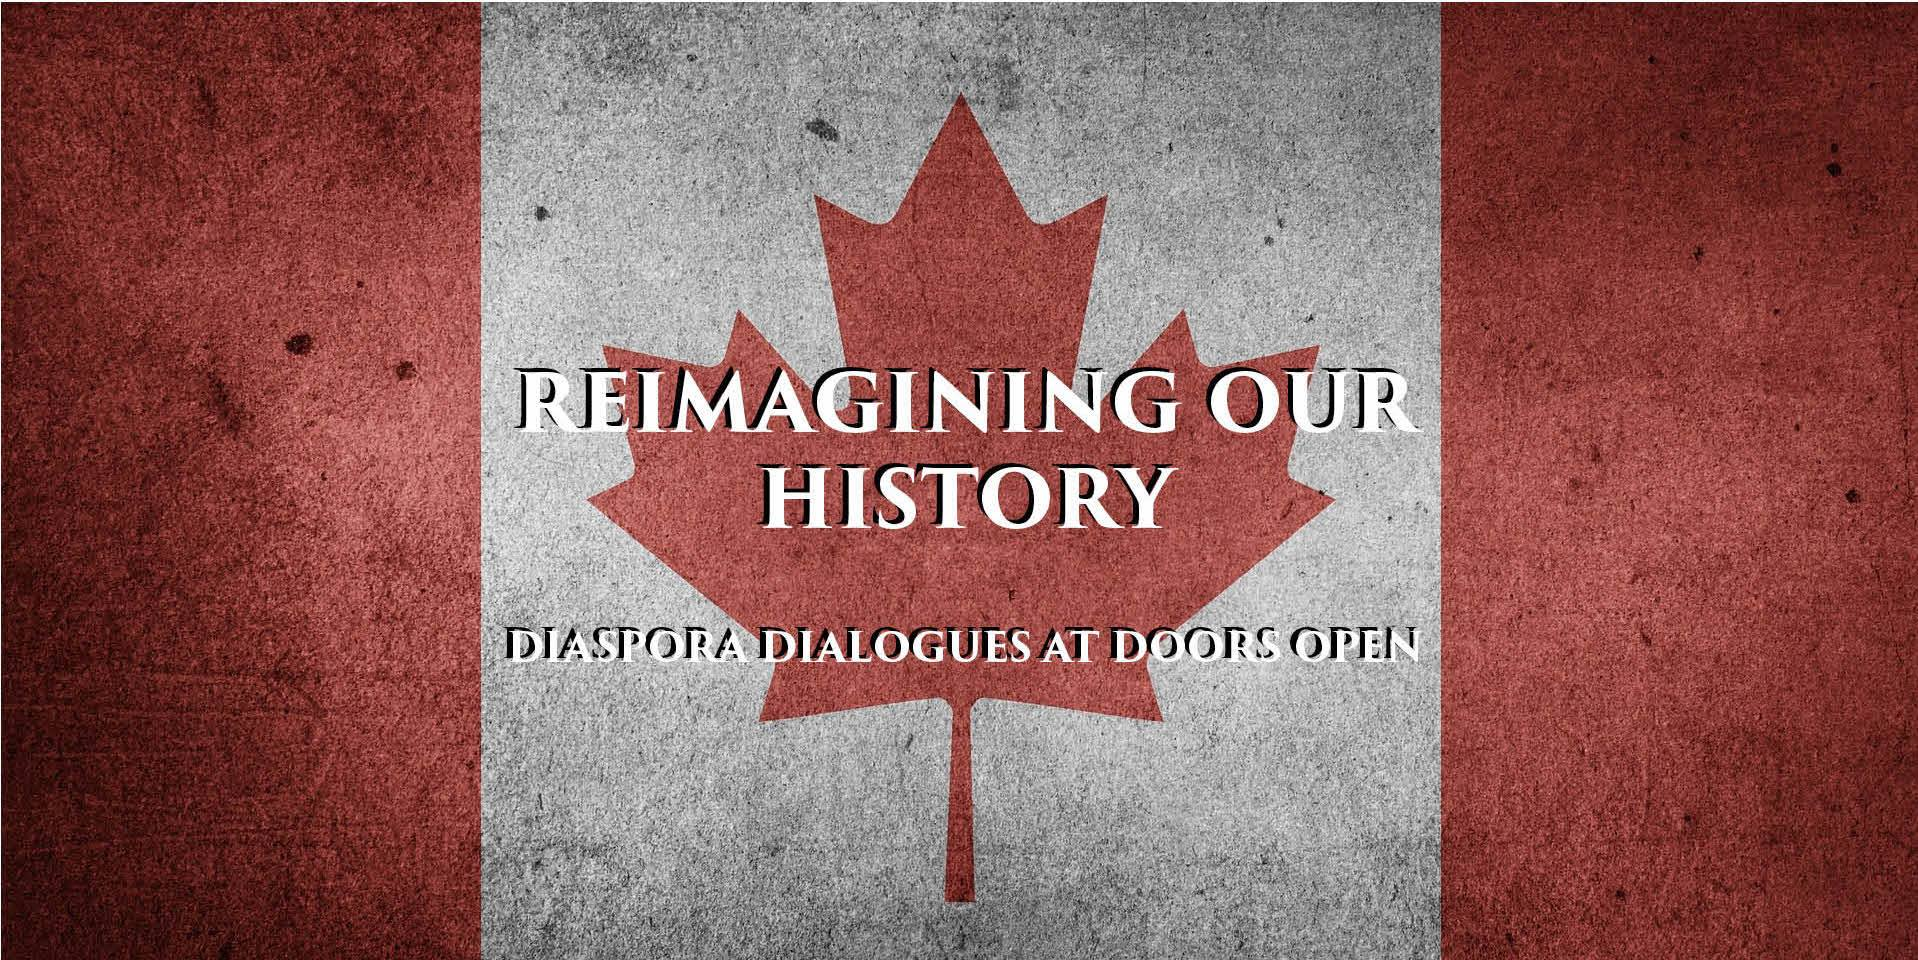 Reimagining Our History - DD at Doors Open